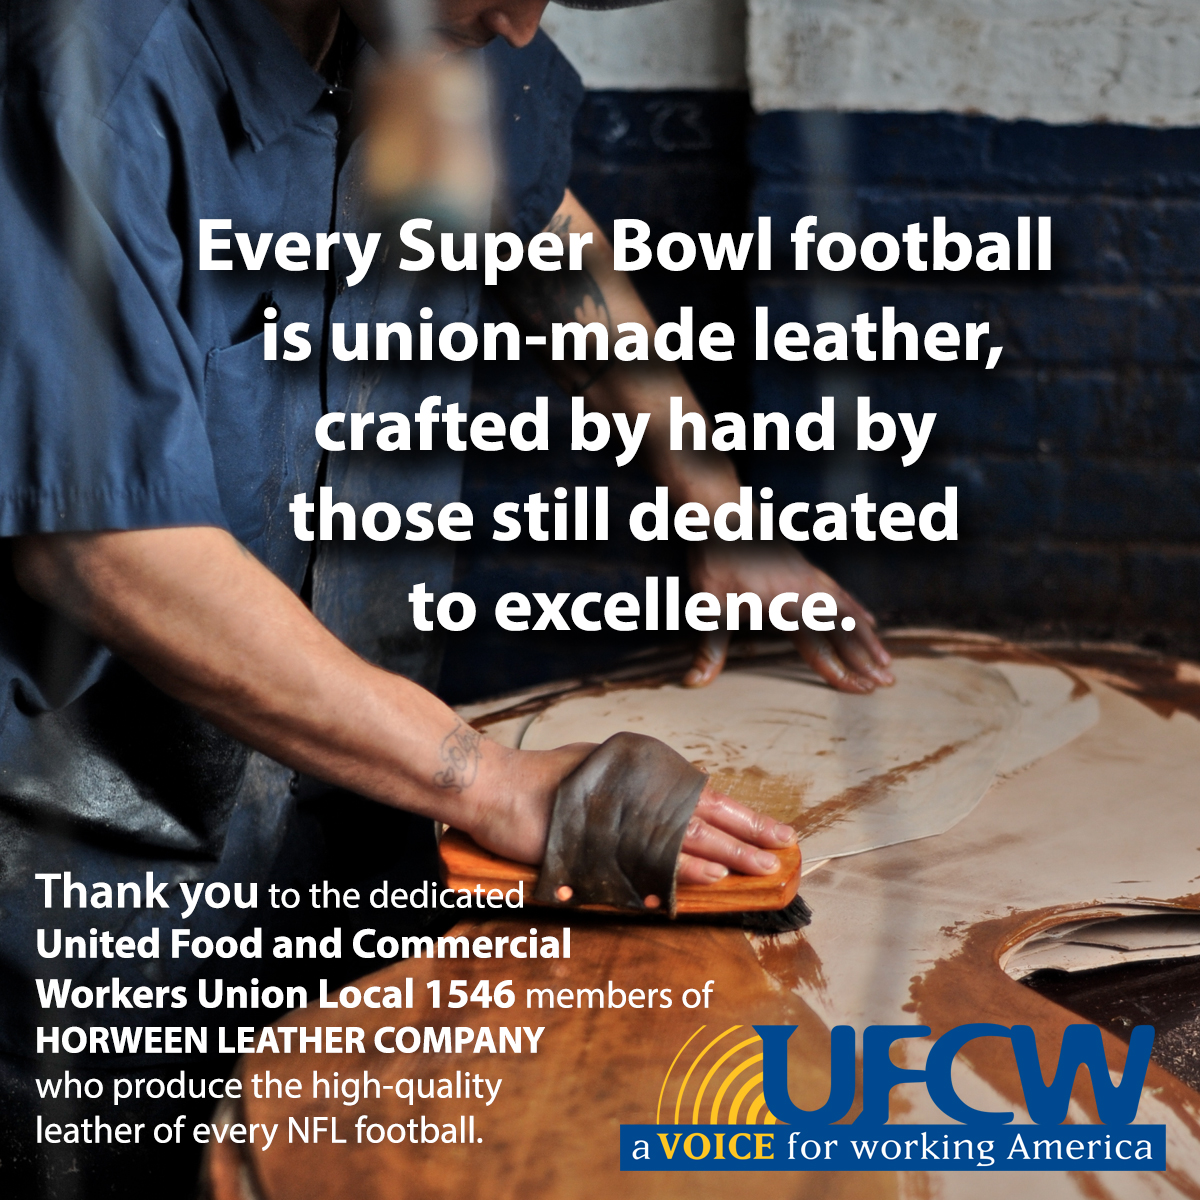 Every Super Bowl Football Starts in UFCW Hands